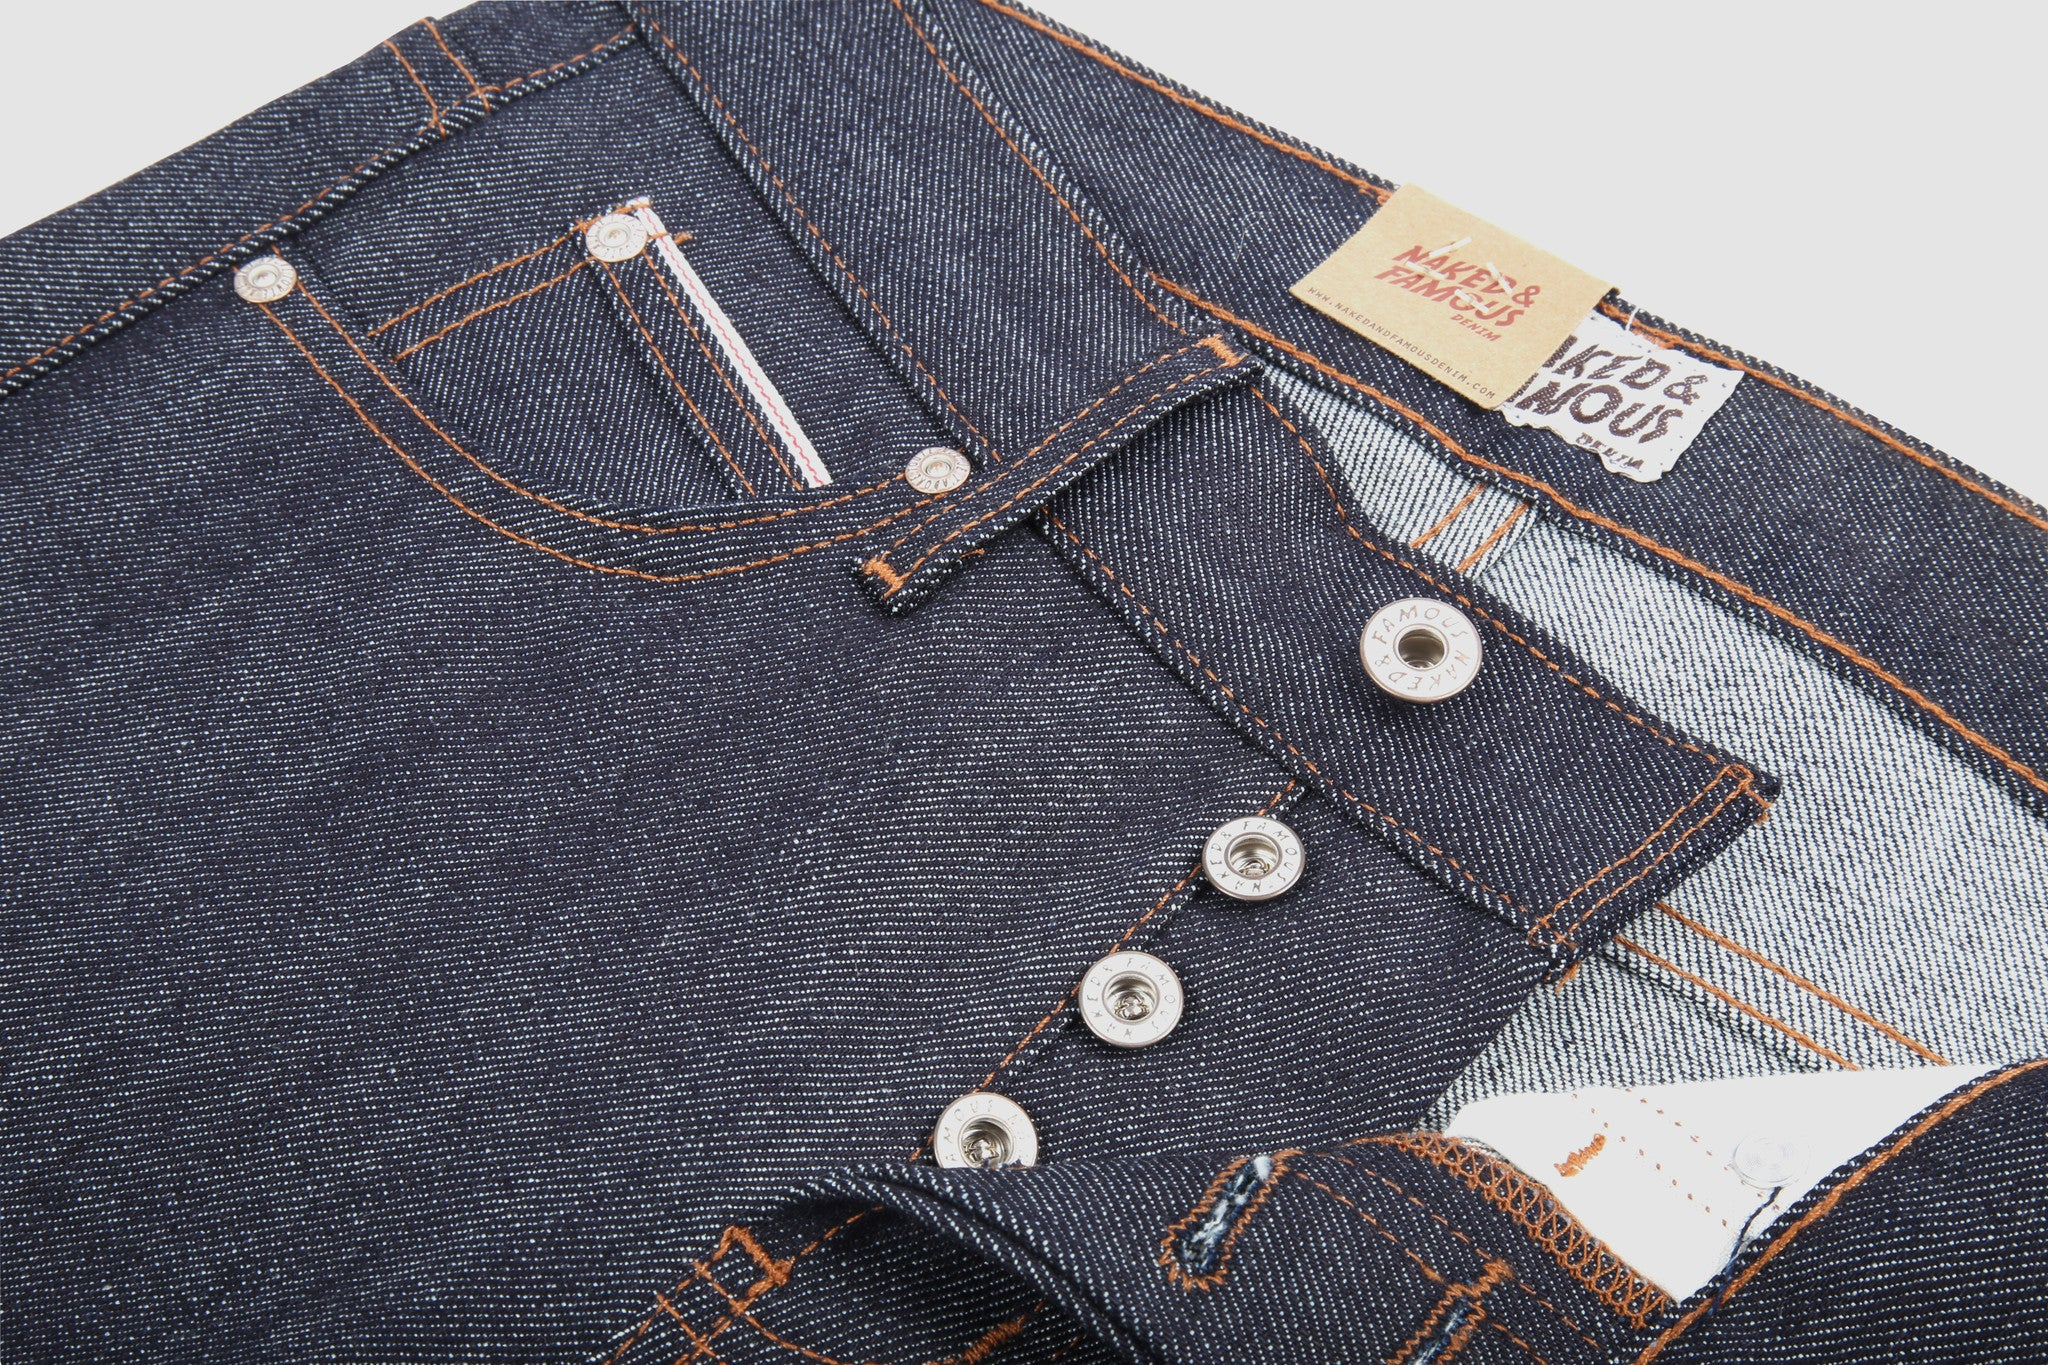 013330 Super Skinny Guy - Stretch Selvedge